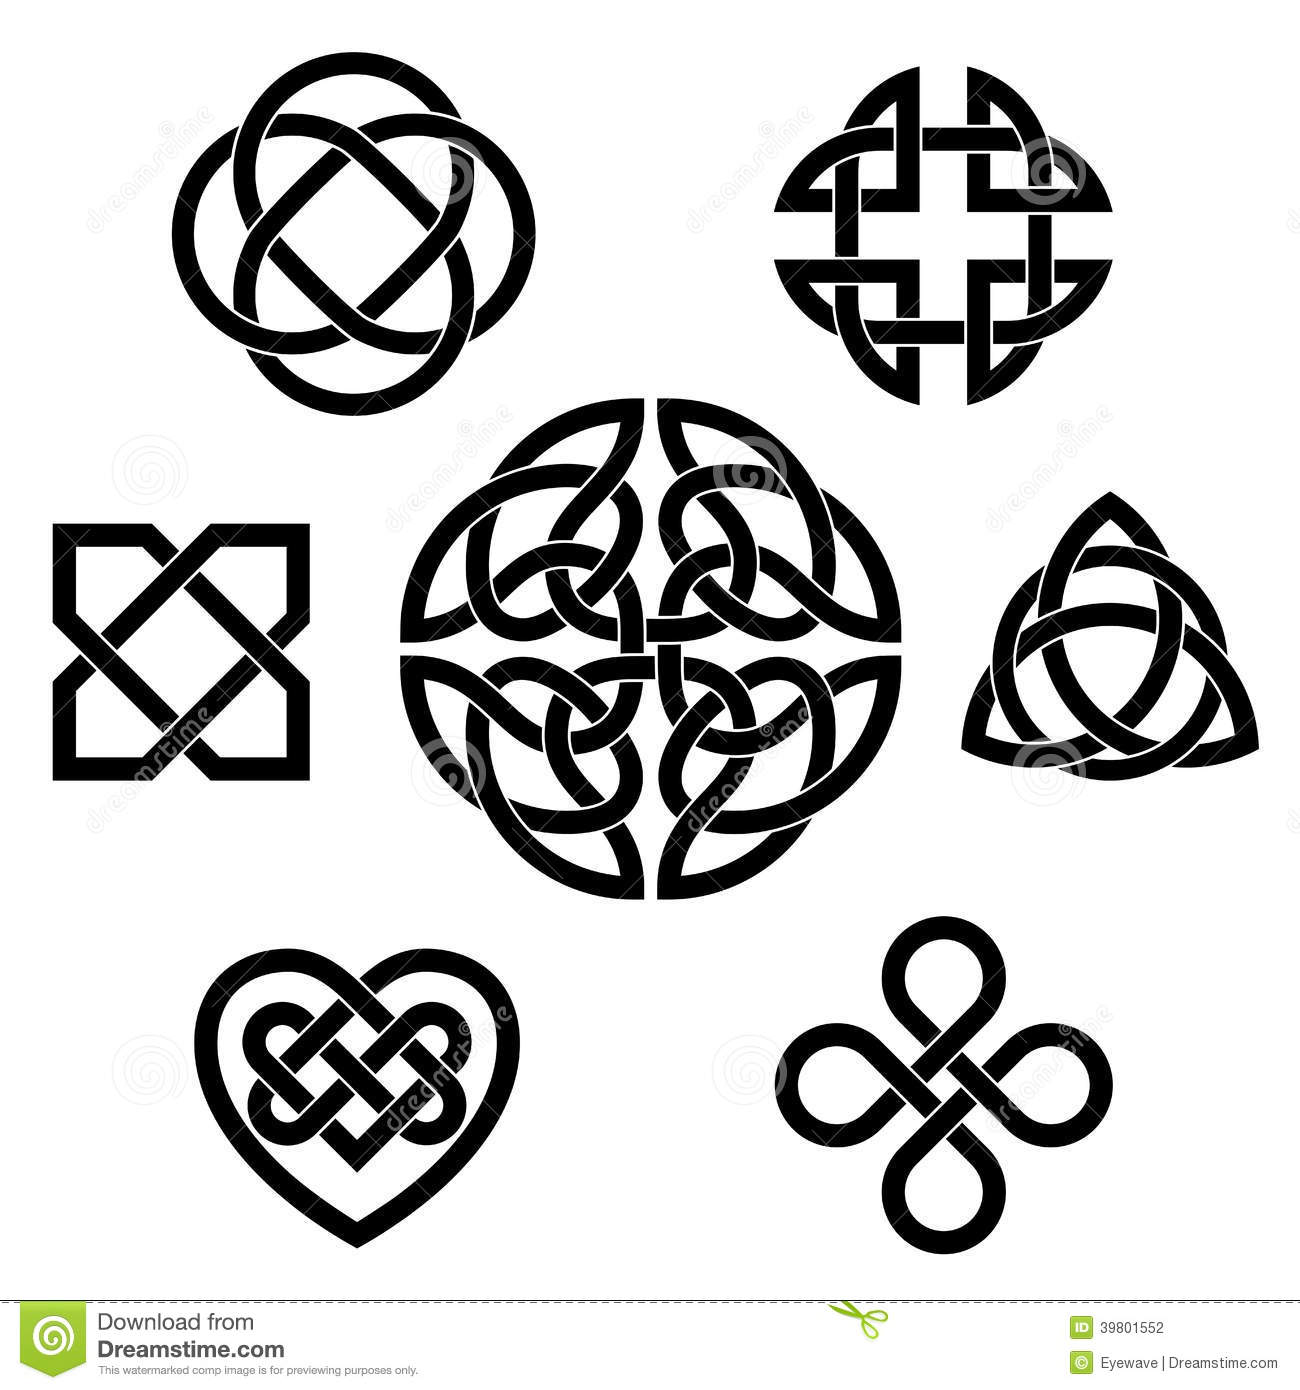 Irish Symbols Meanings Image Collections Meaning Of This Symbol